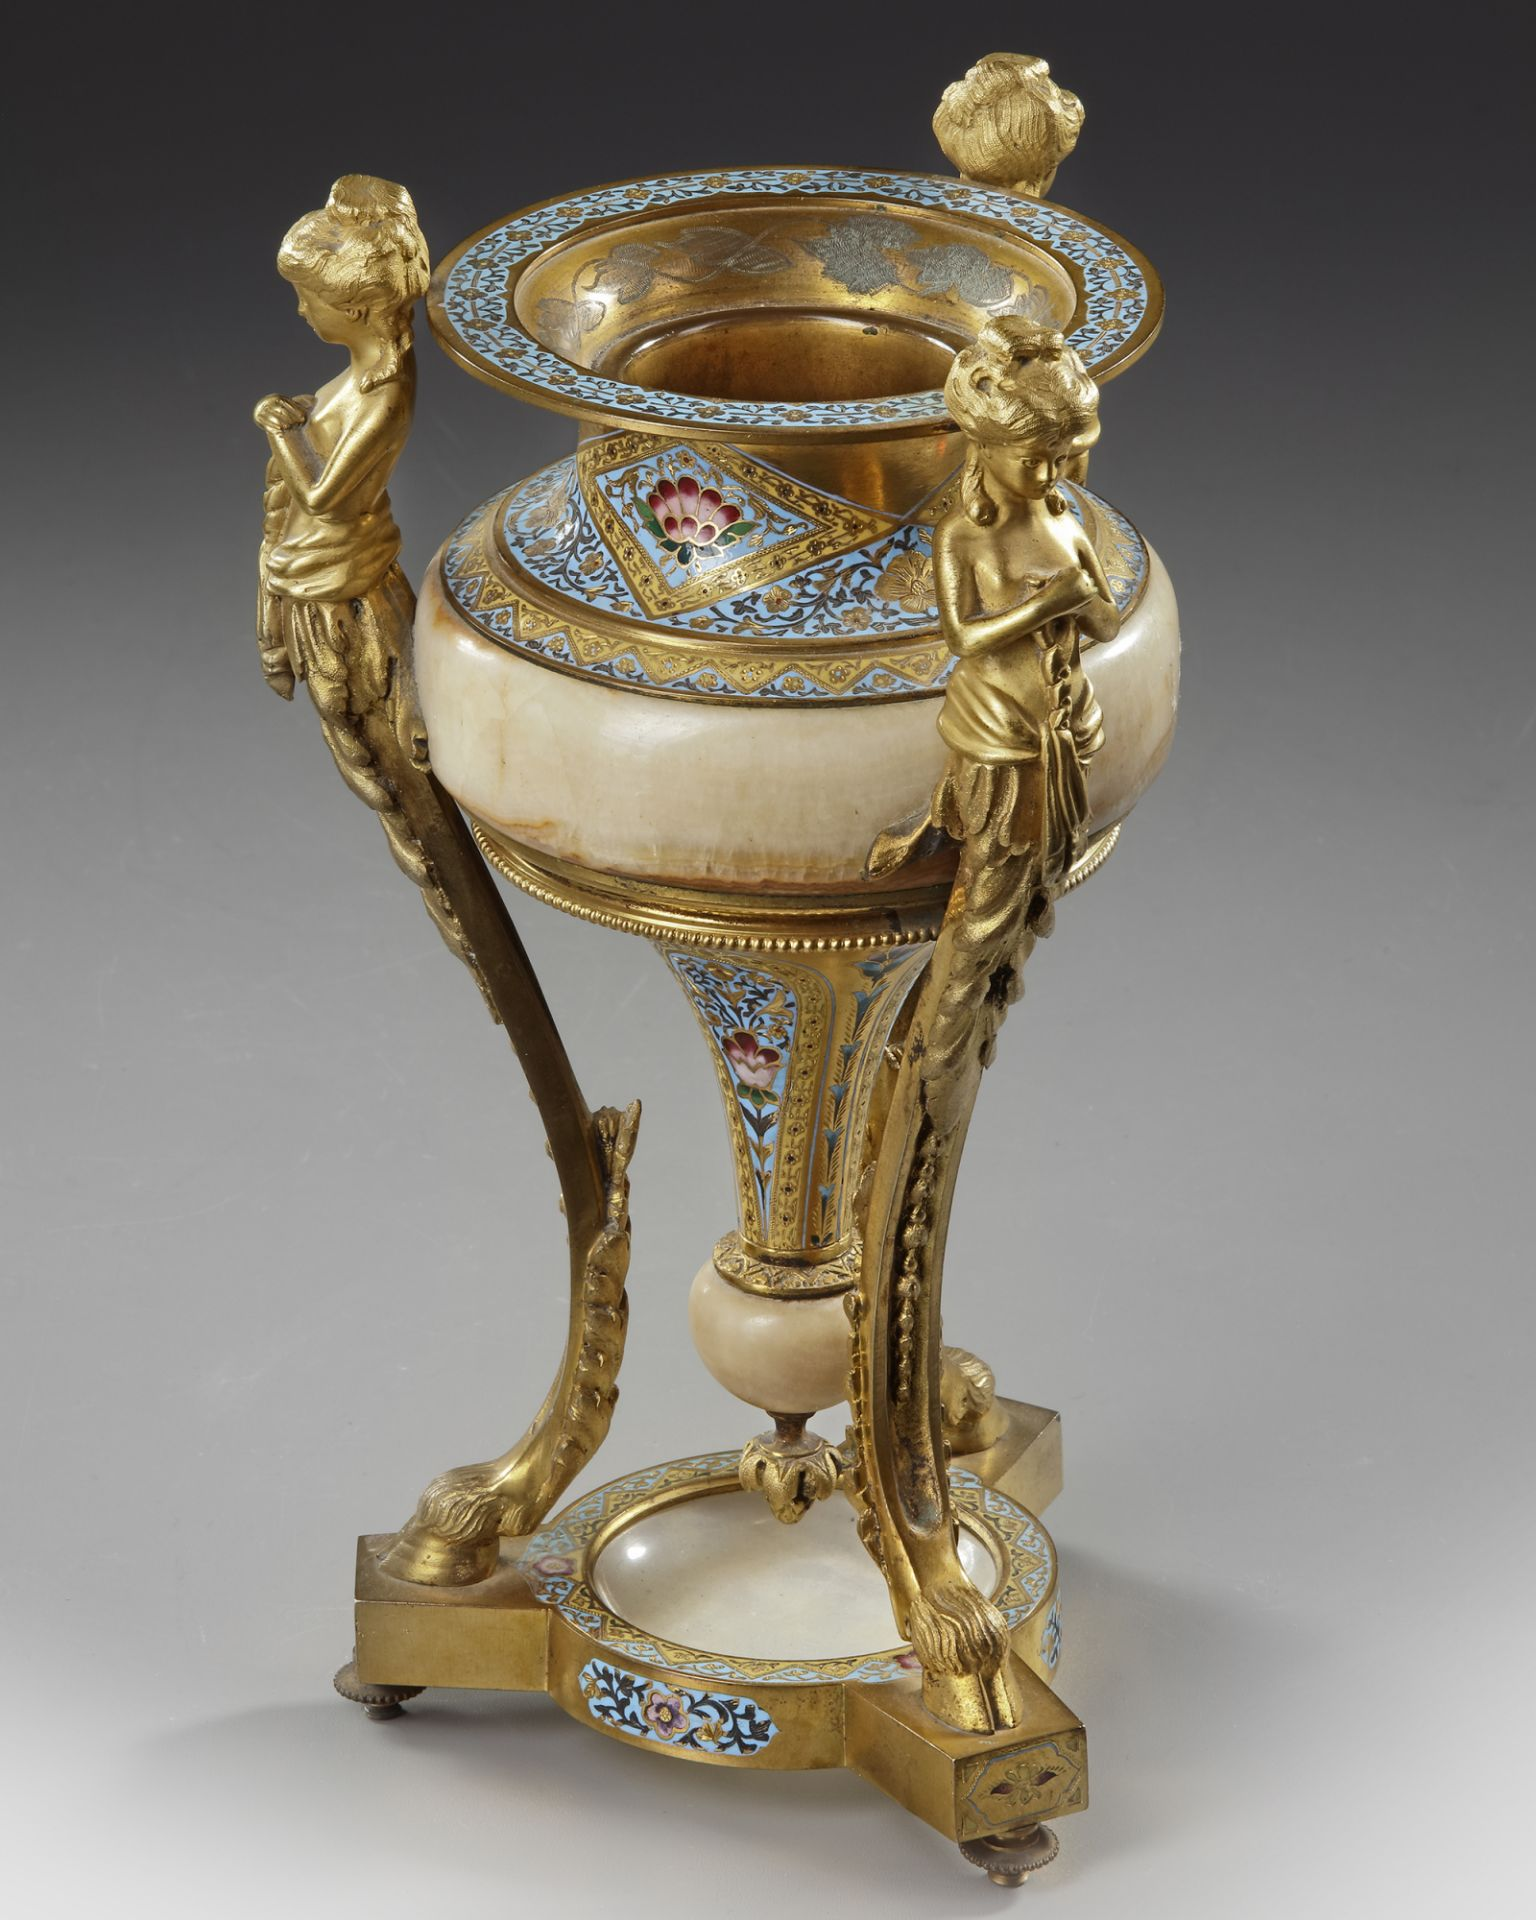 A BRONZE STANDING CUP, 19TH CENTURY - Image 3 of 3